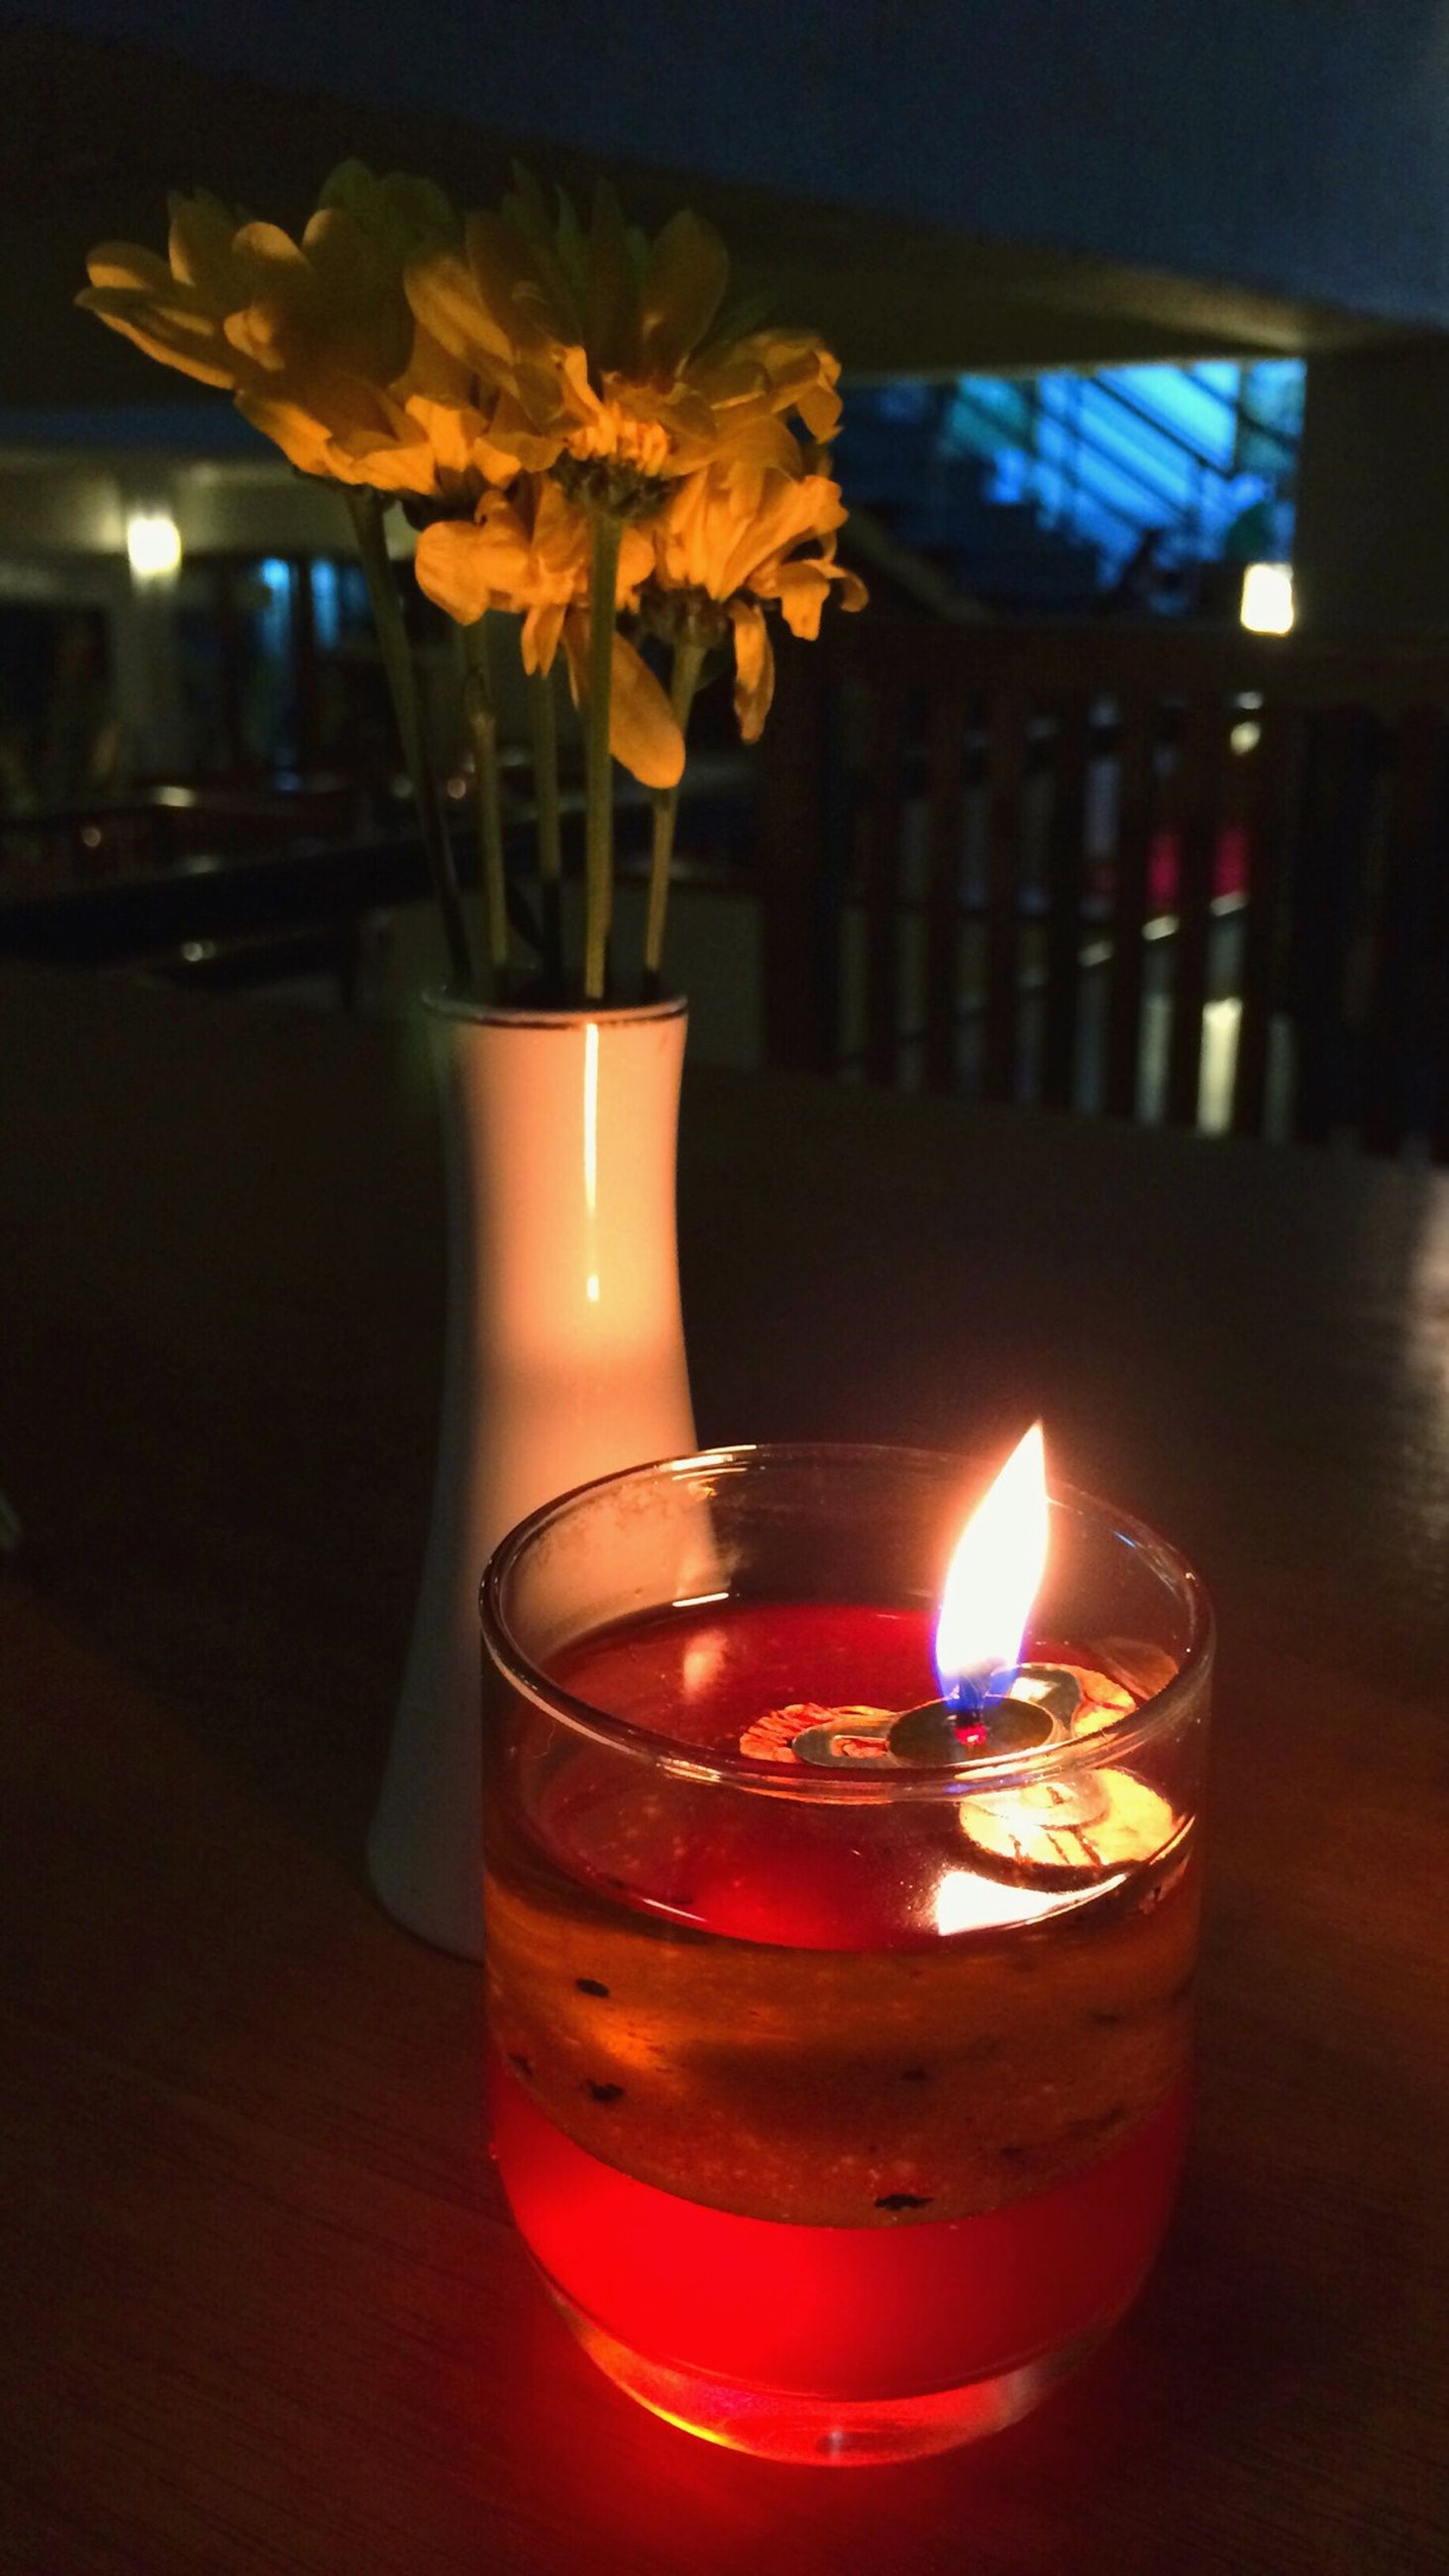 flame, burning, candle, fire - natural phenomenon, indoors, heat - temperature, illuminated, glowing, lit, close-up, candlelight, table, glass - material, focus on foreground, fire, night, dark, flower, tea light, still life